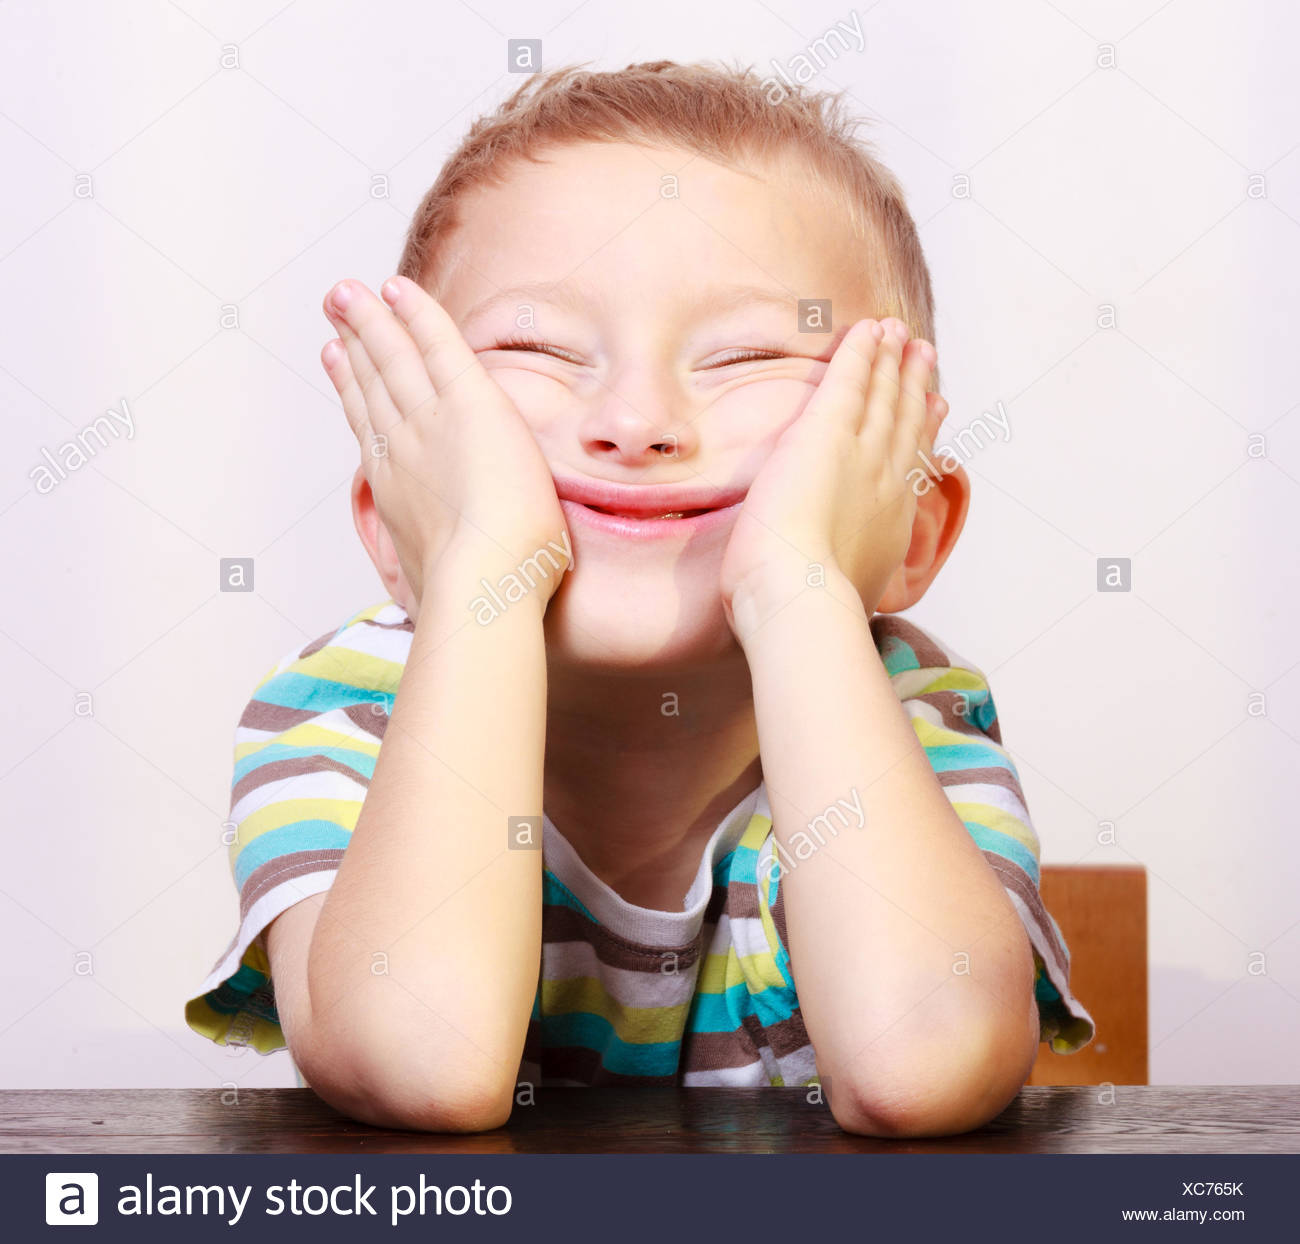 1fcff6ed5 Portrait of blond boy child kid making funny face at the table Stock ...